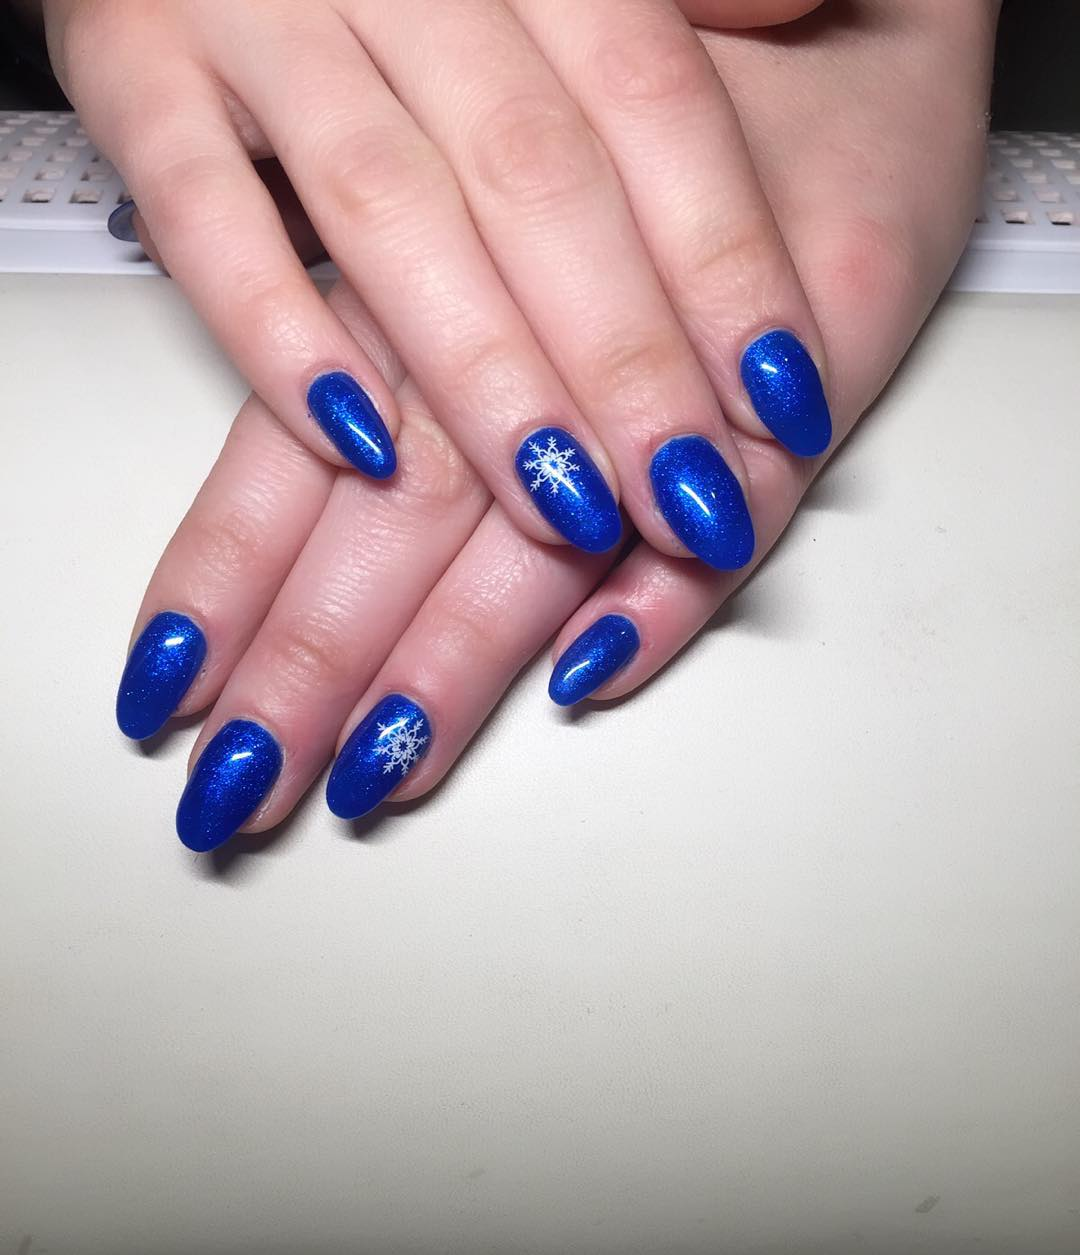 Attractive Royal Blue Nail Art Designs and Ideas - 21+ Royal Blue Nail Art Designs, Ideas Design Trends - Premium PSD